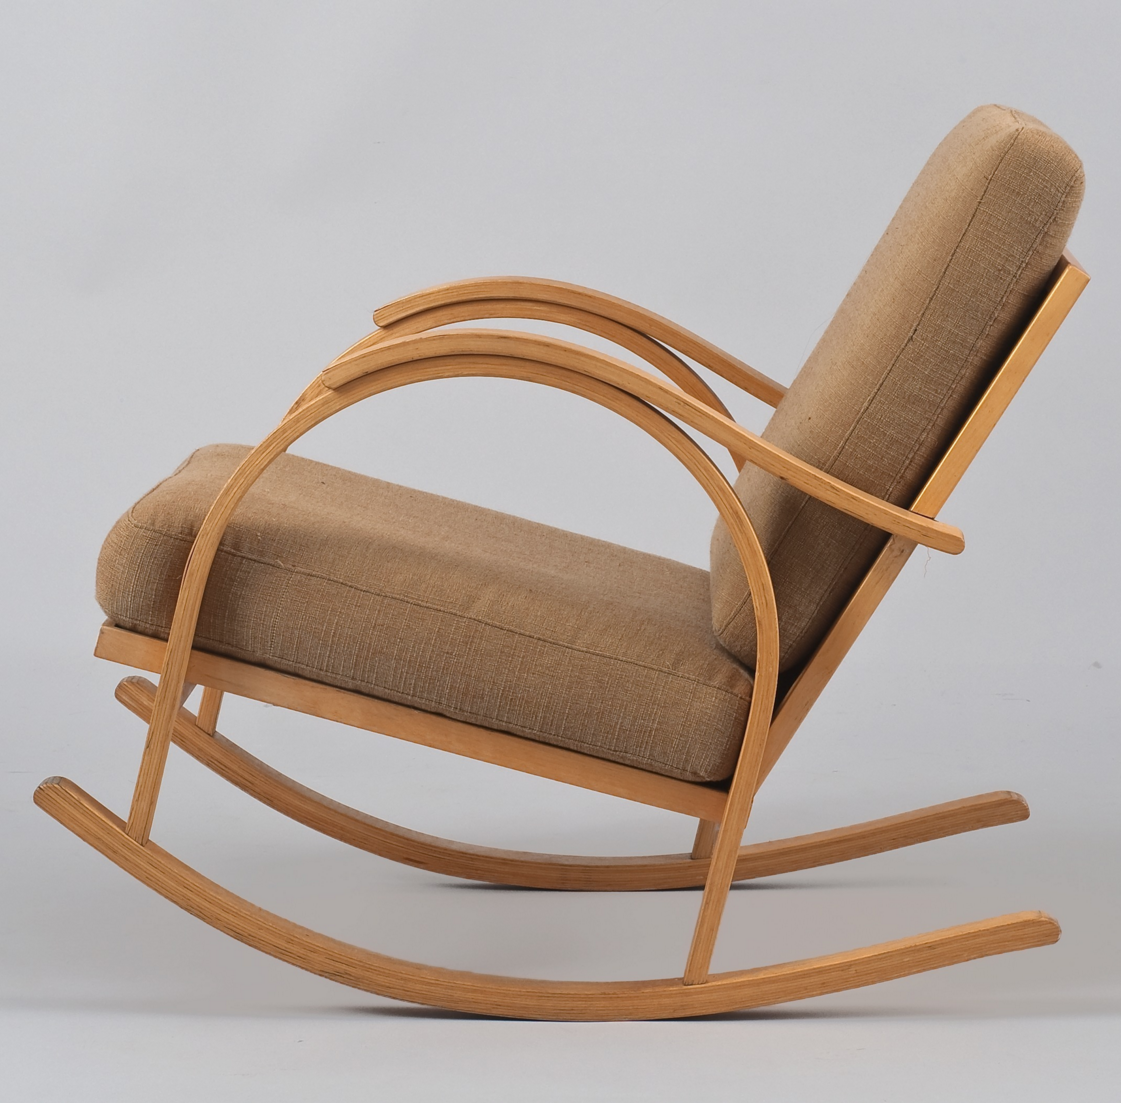 Maija Heikinheimo Birch Rocking Chair For Asko 1932 Ahsap Isleri